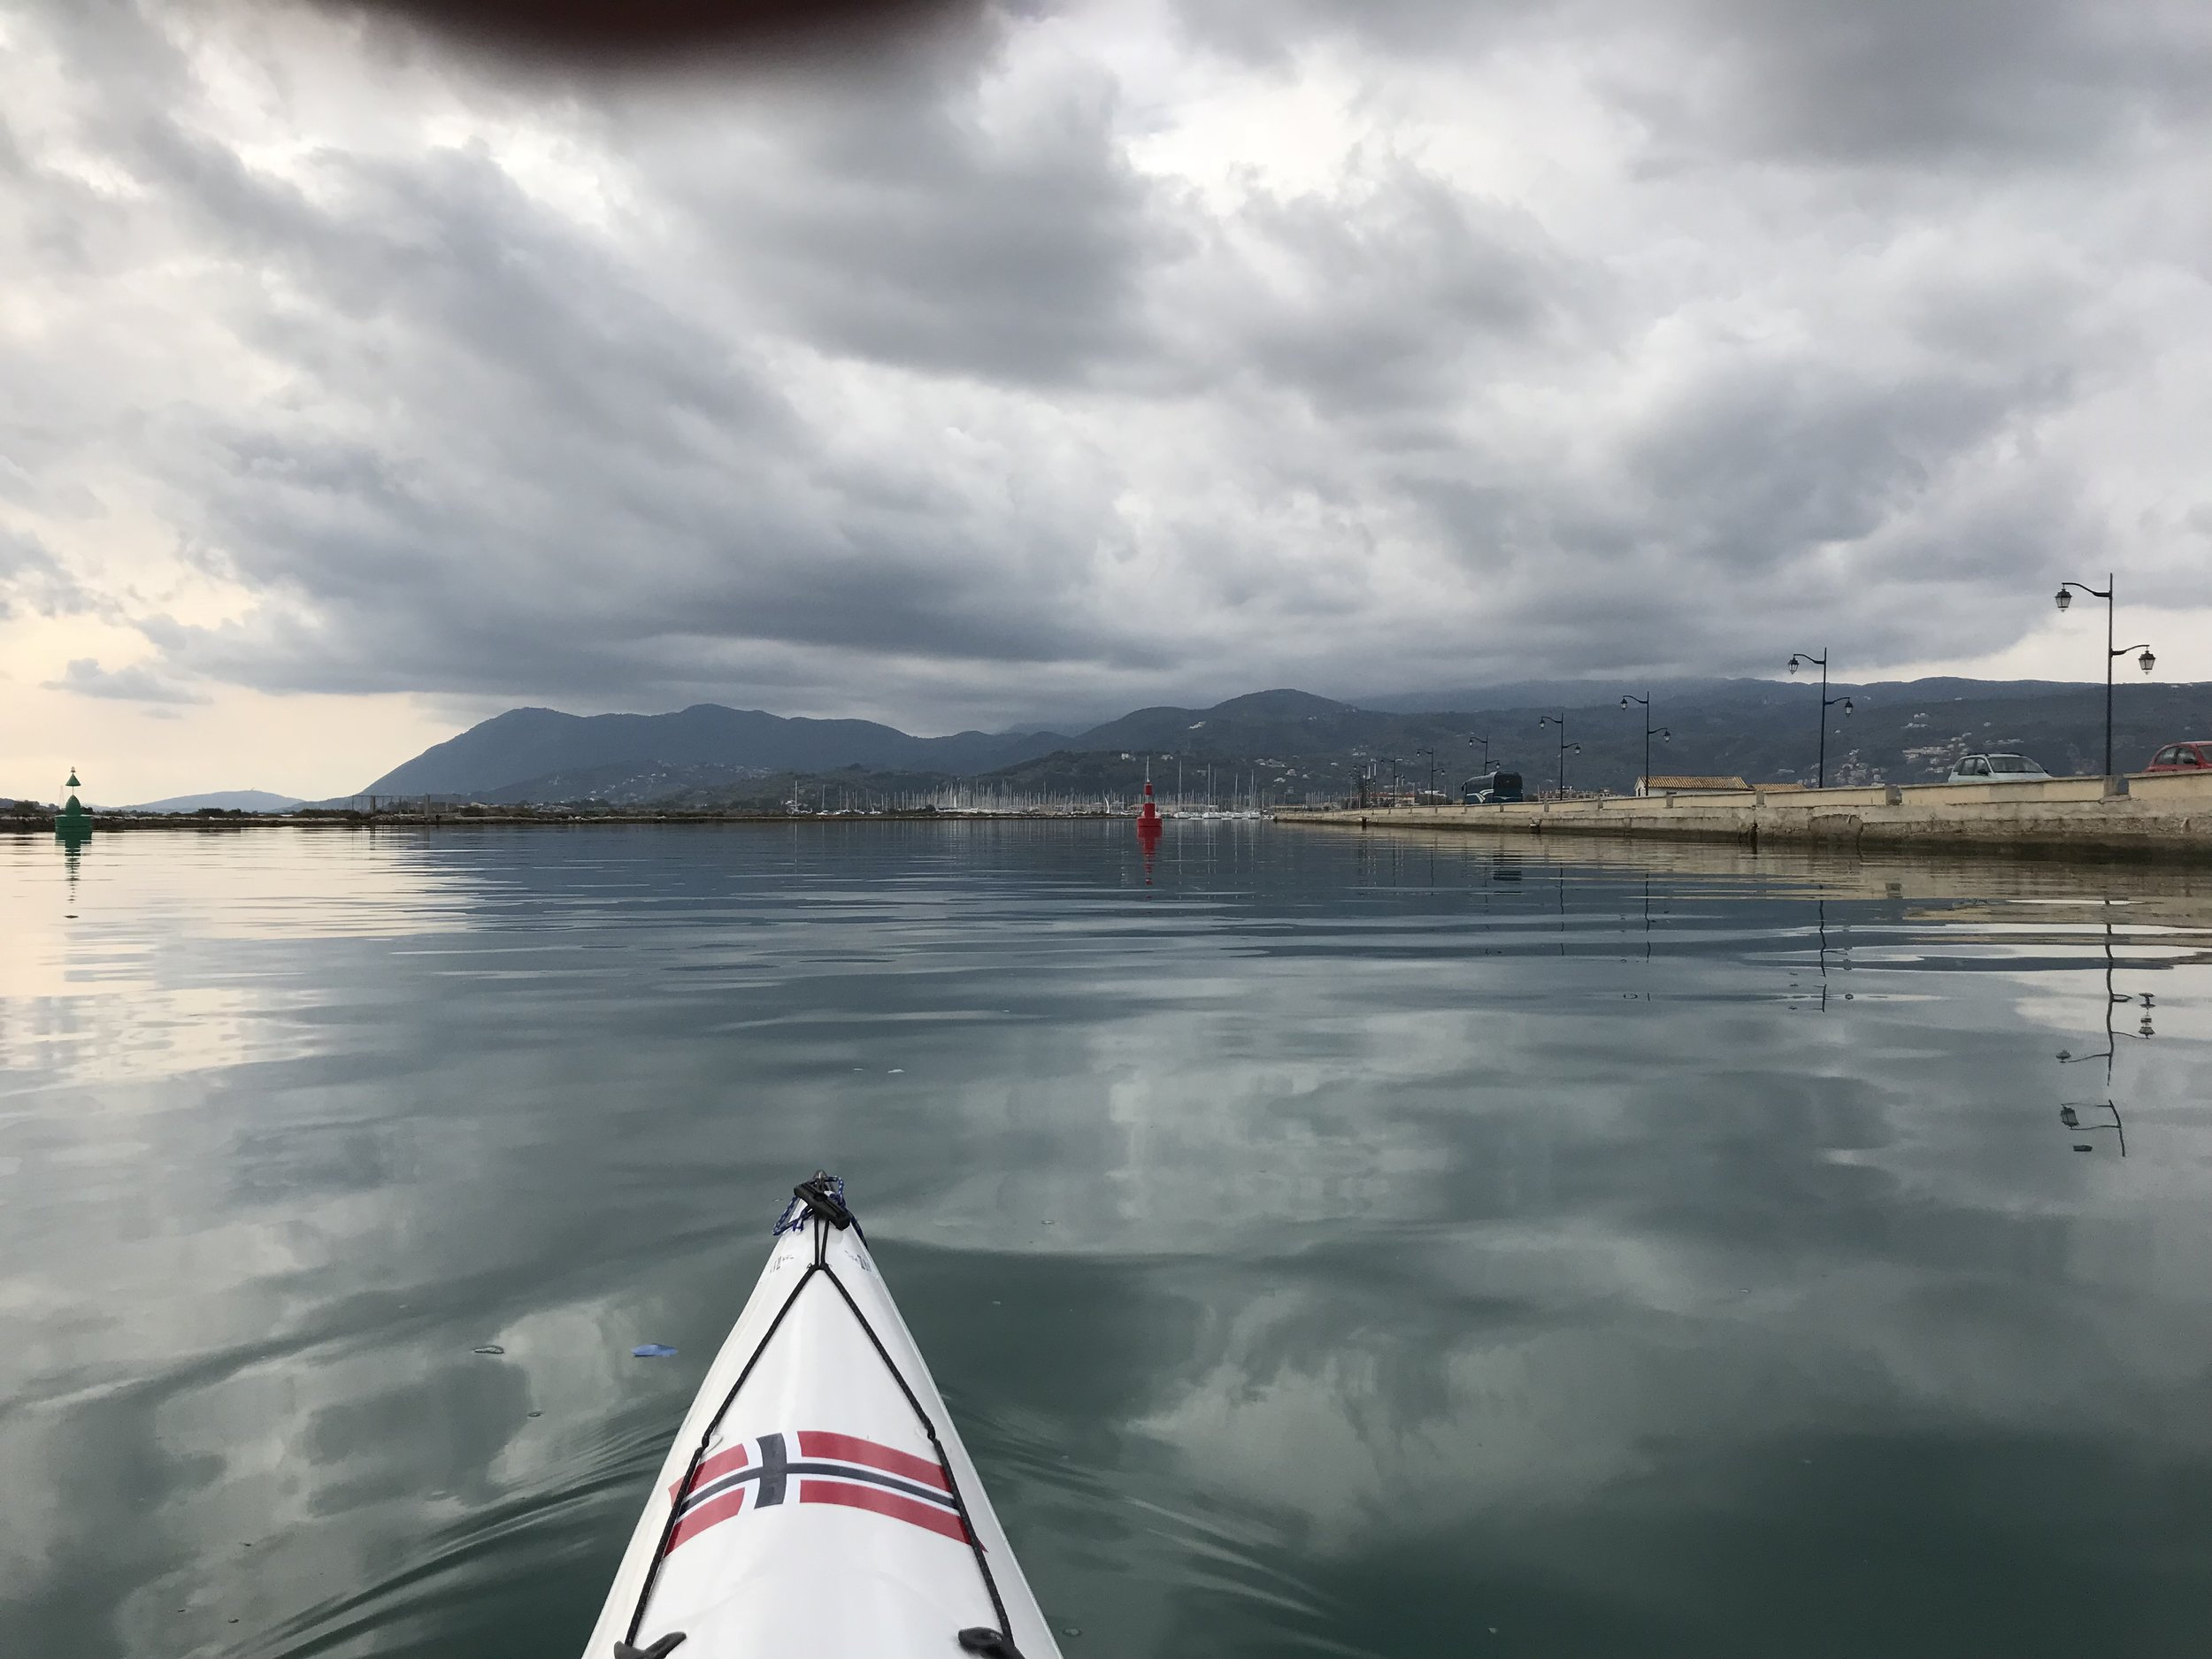 I breathe a small sigh of relief as I paddle quietly through a small passage into the heart of Lefkada. Grey clouds approach rapidly.